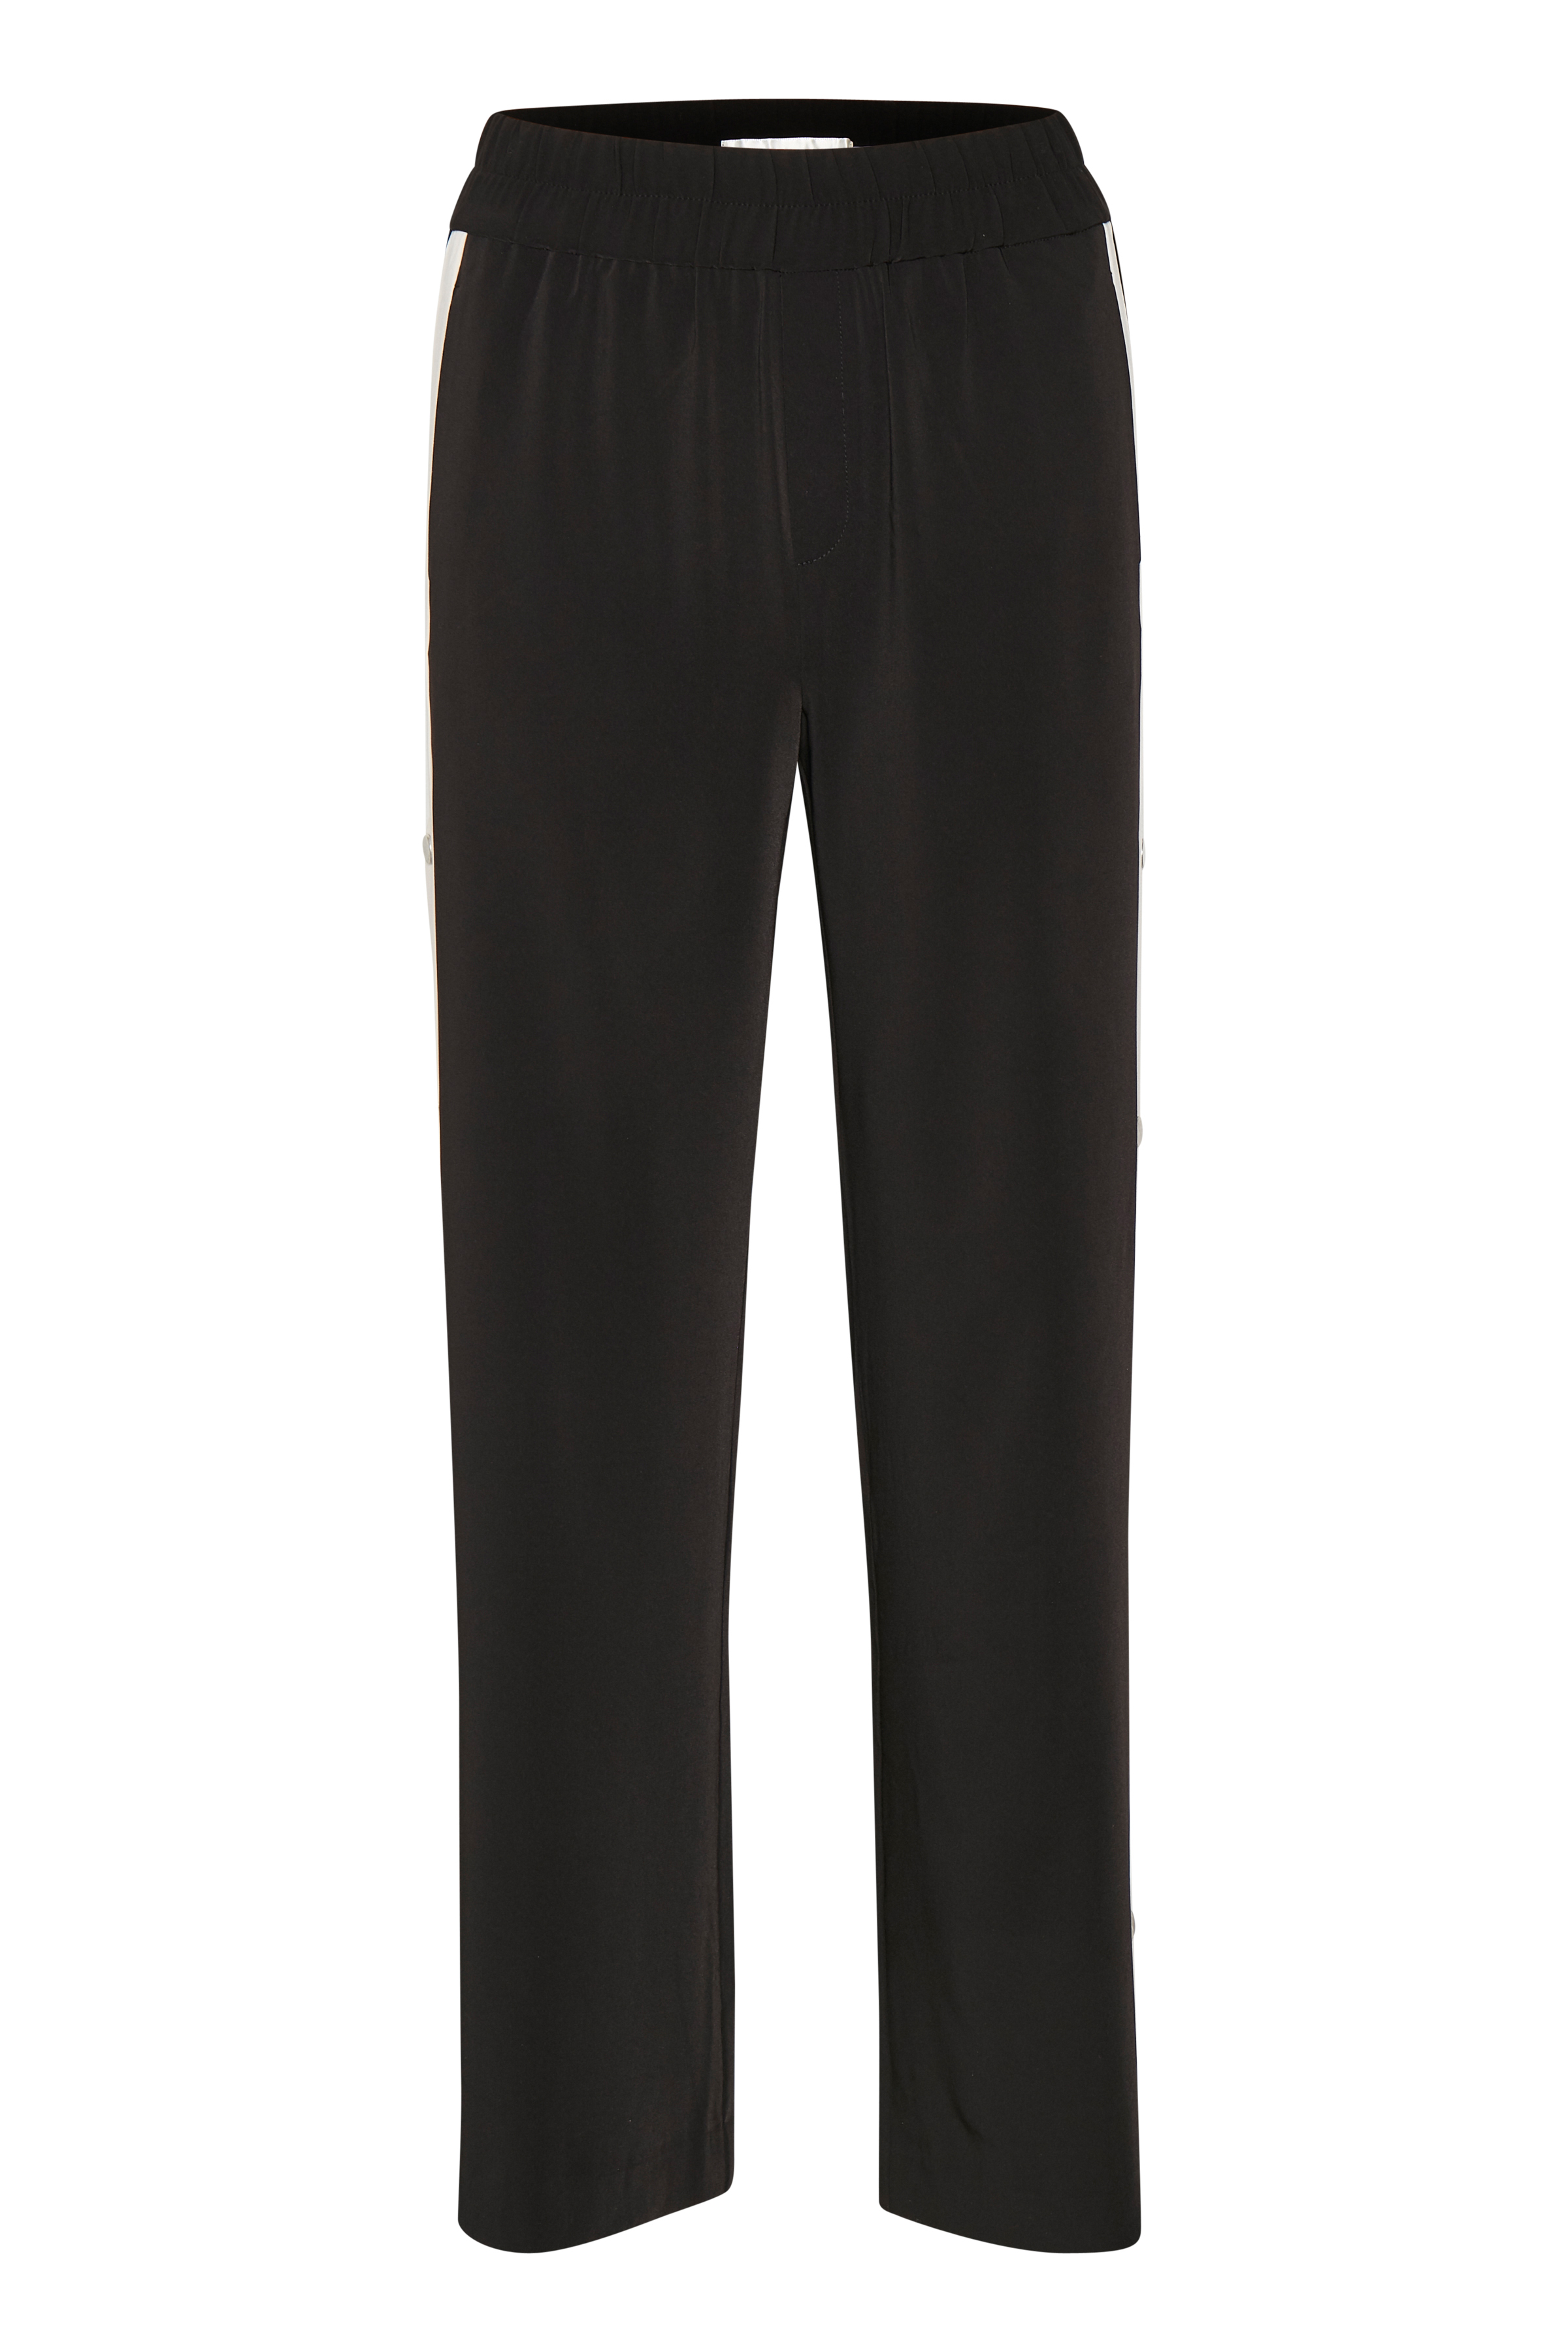 Black Pants Suiting – Køb Black Pants Suiting fra str. 32-44 her